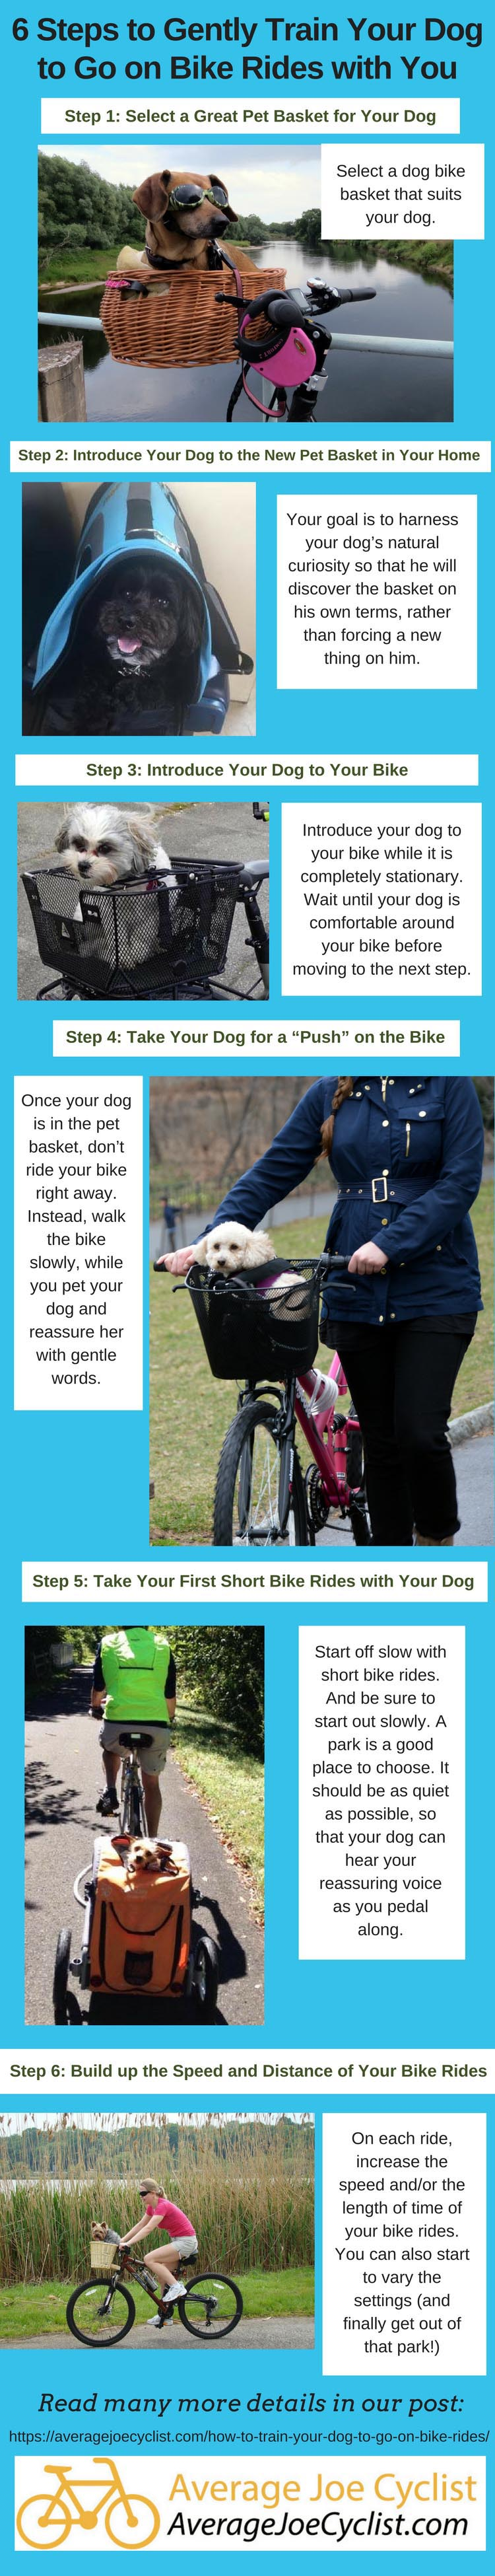 6 steps to gently train your dog to go on bike rides with us